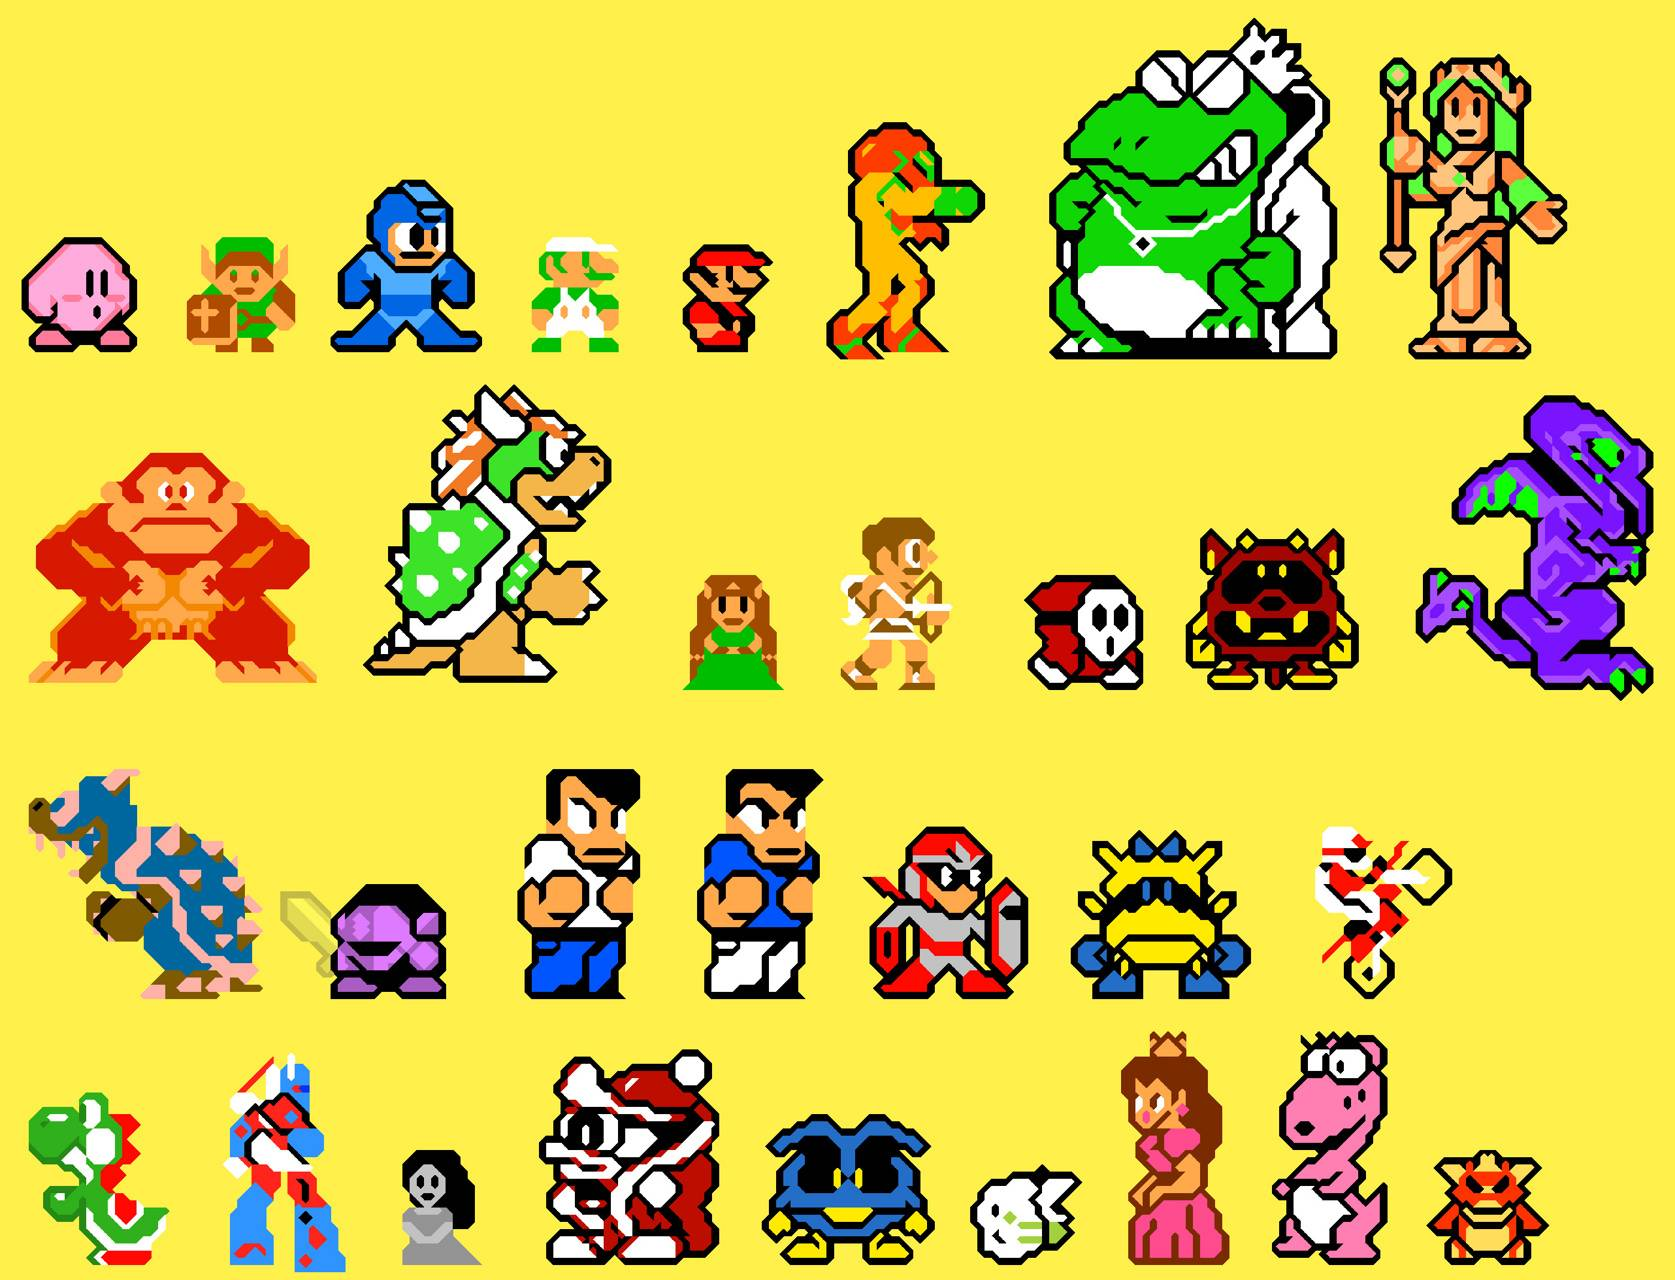 Smoothed Sprites